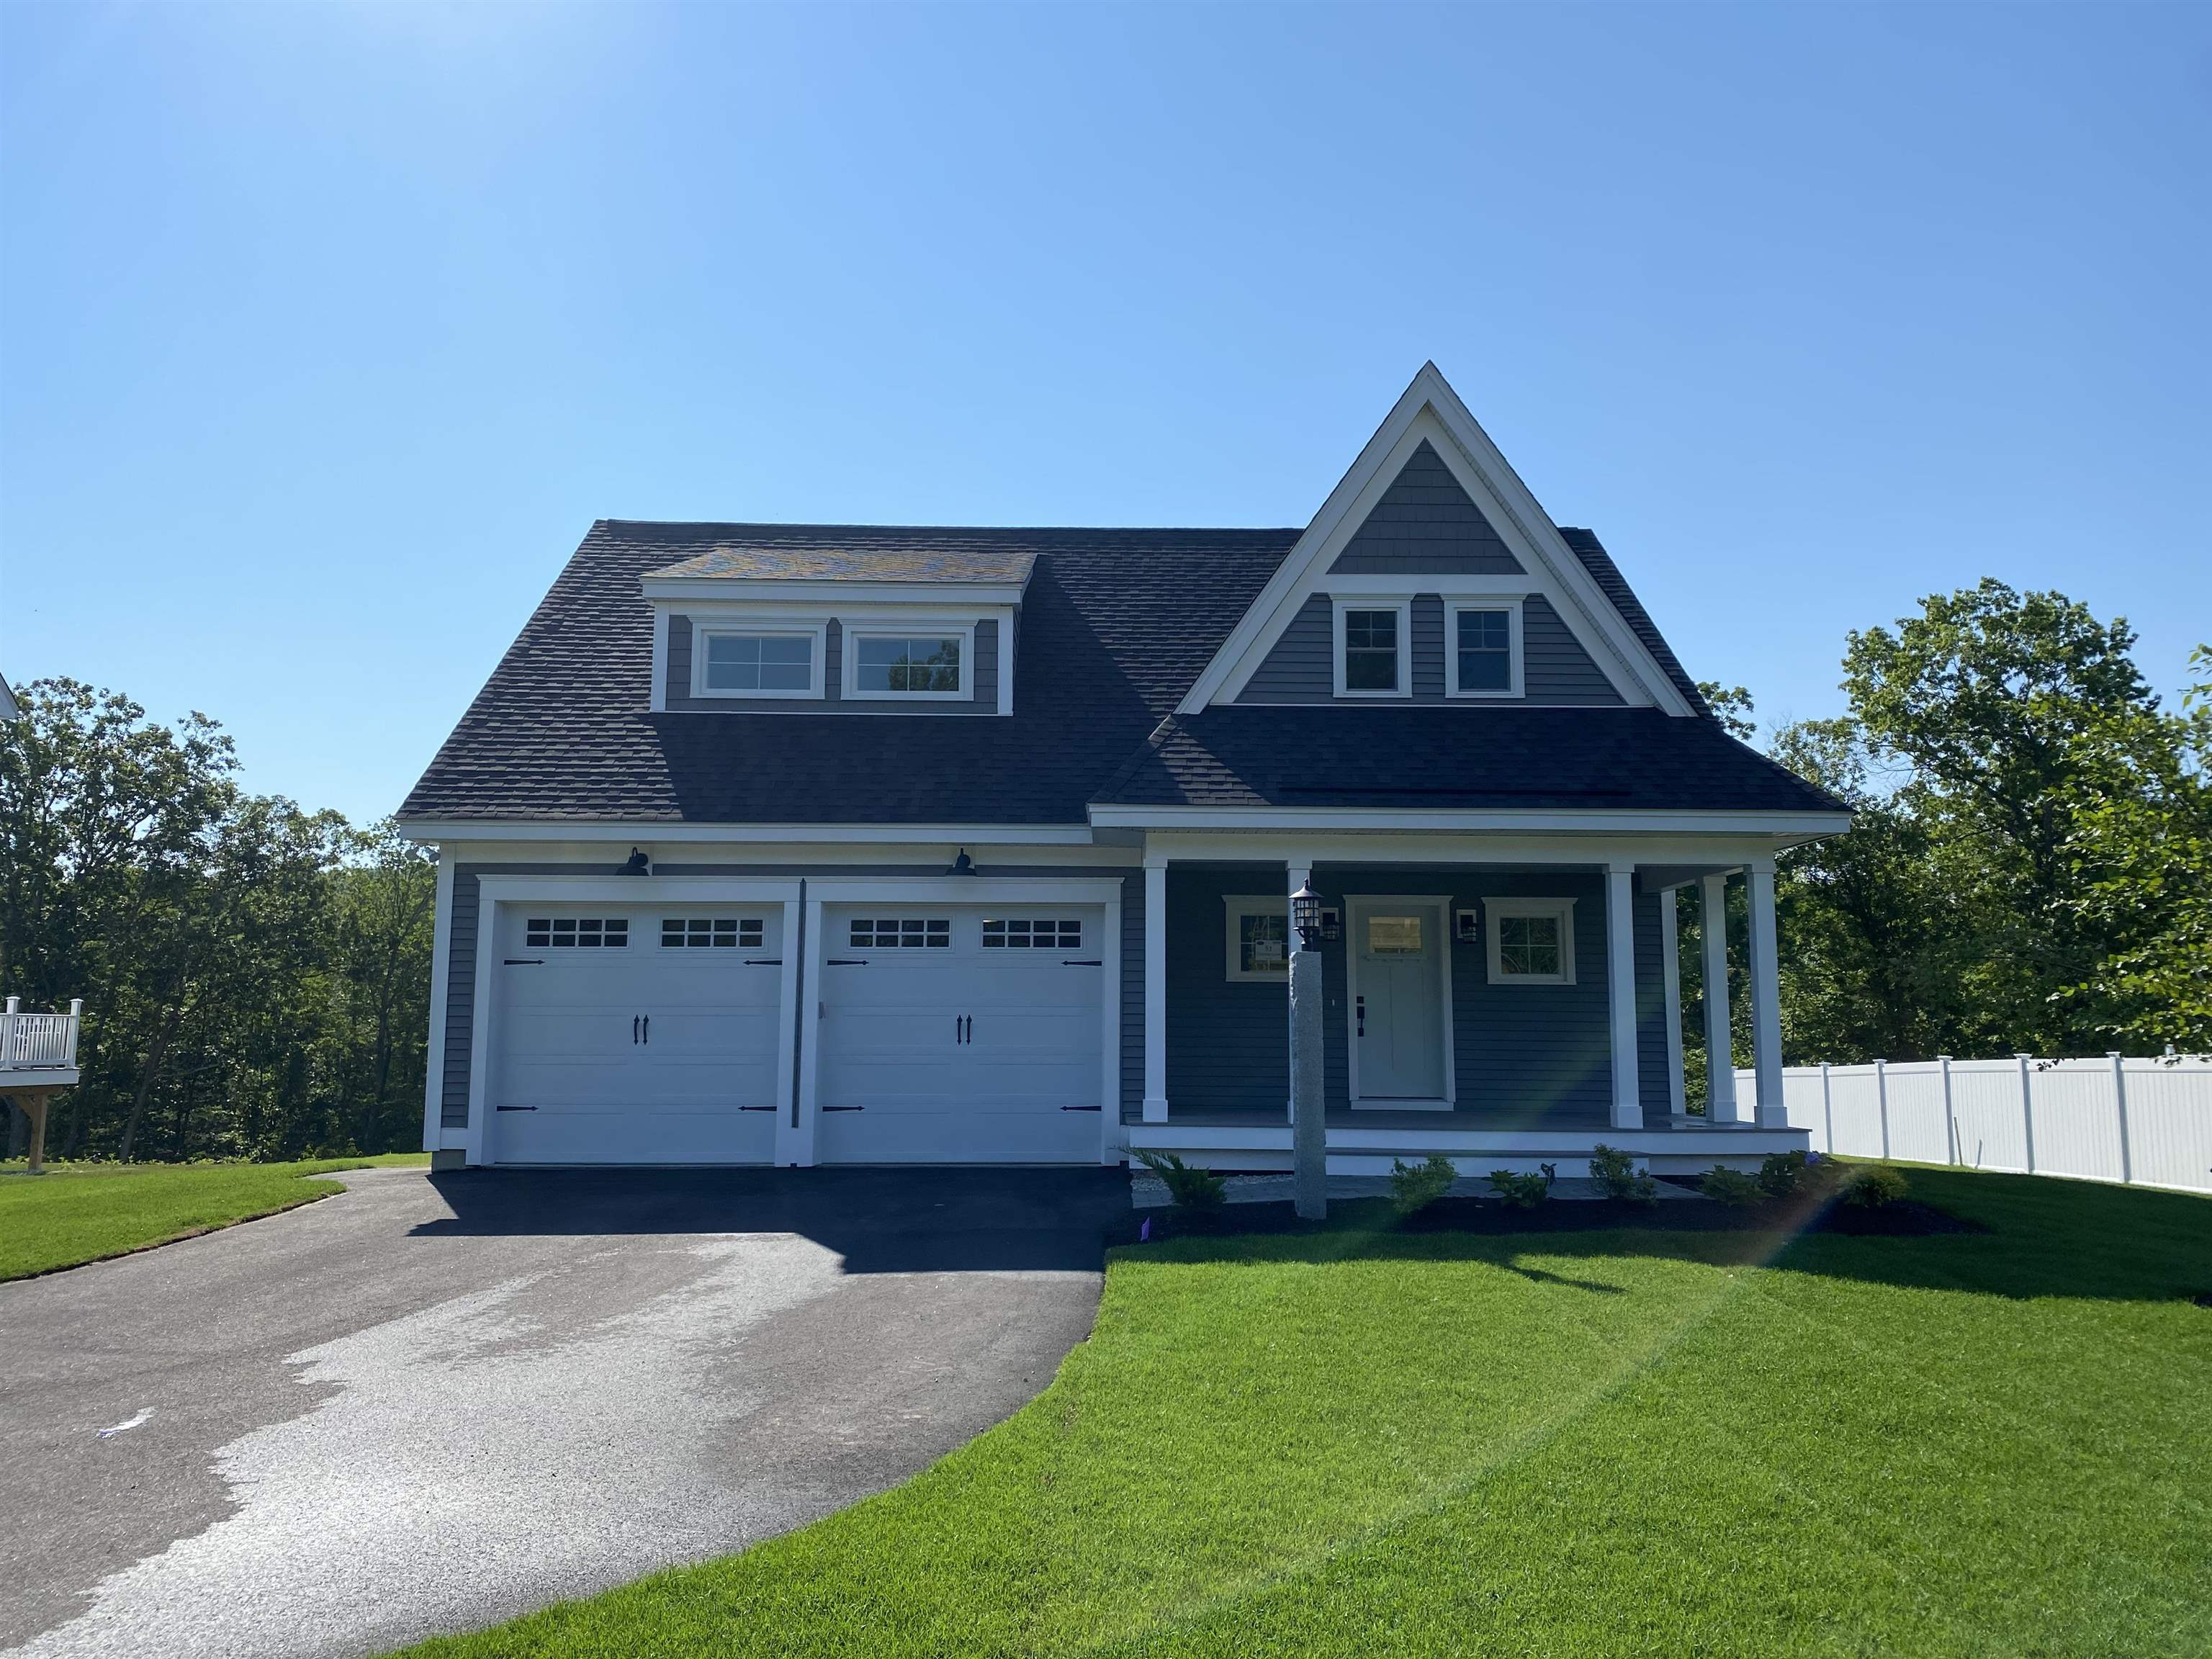 Photo of Lot 104 Lorden Commons Londonderry NH 03053